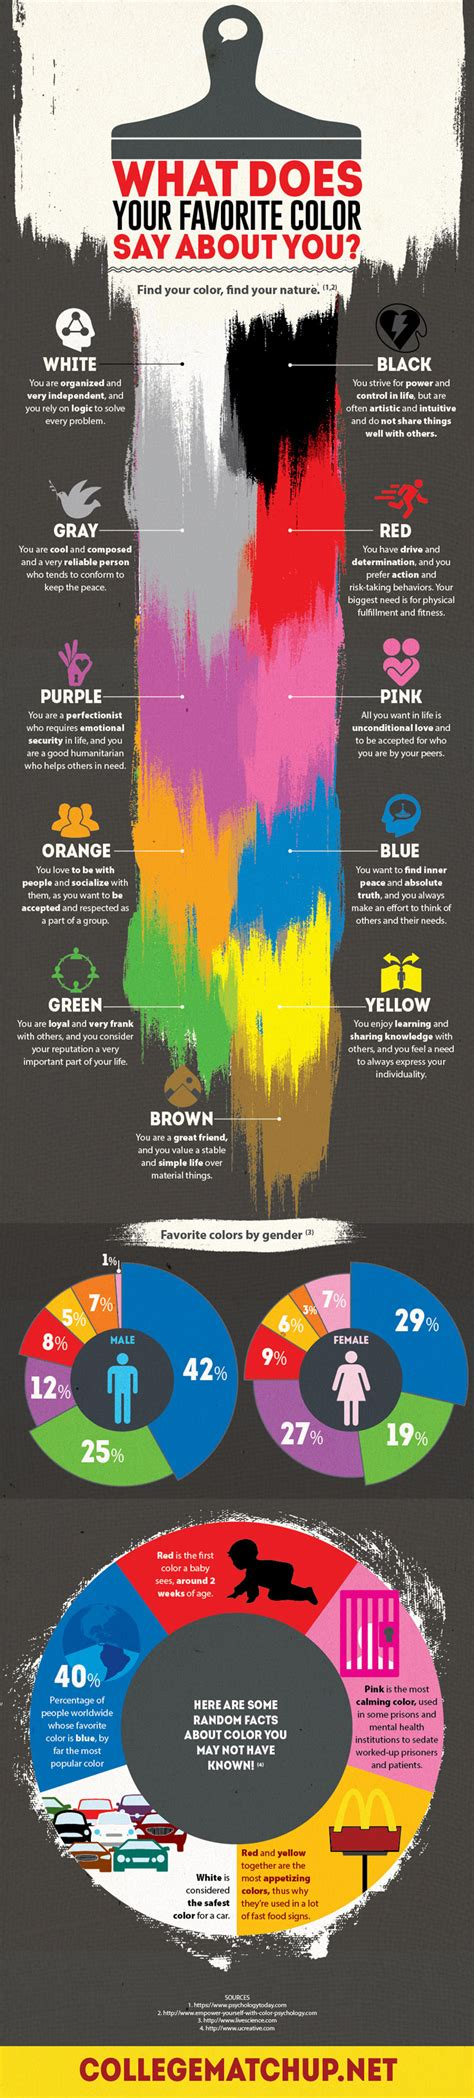 favourite color what does your favorite color say about you infographic